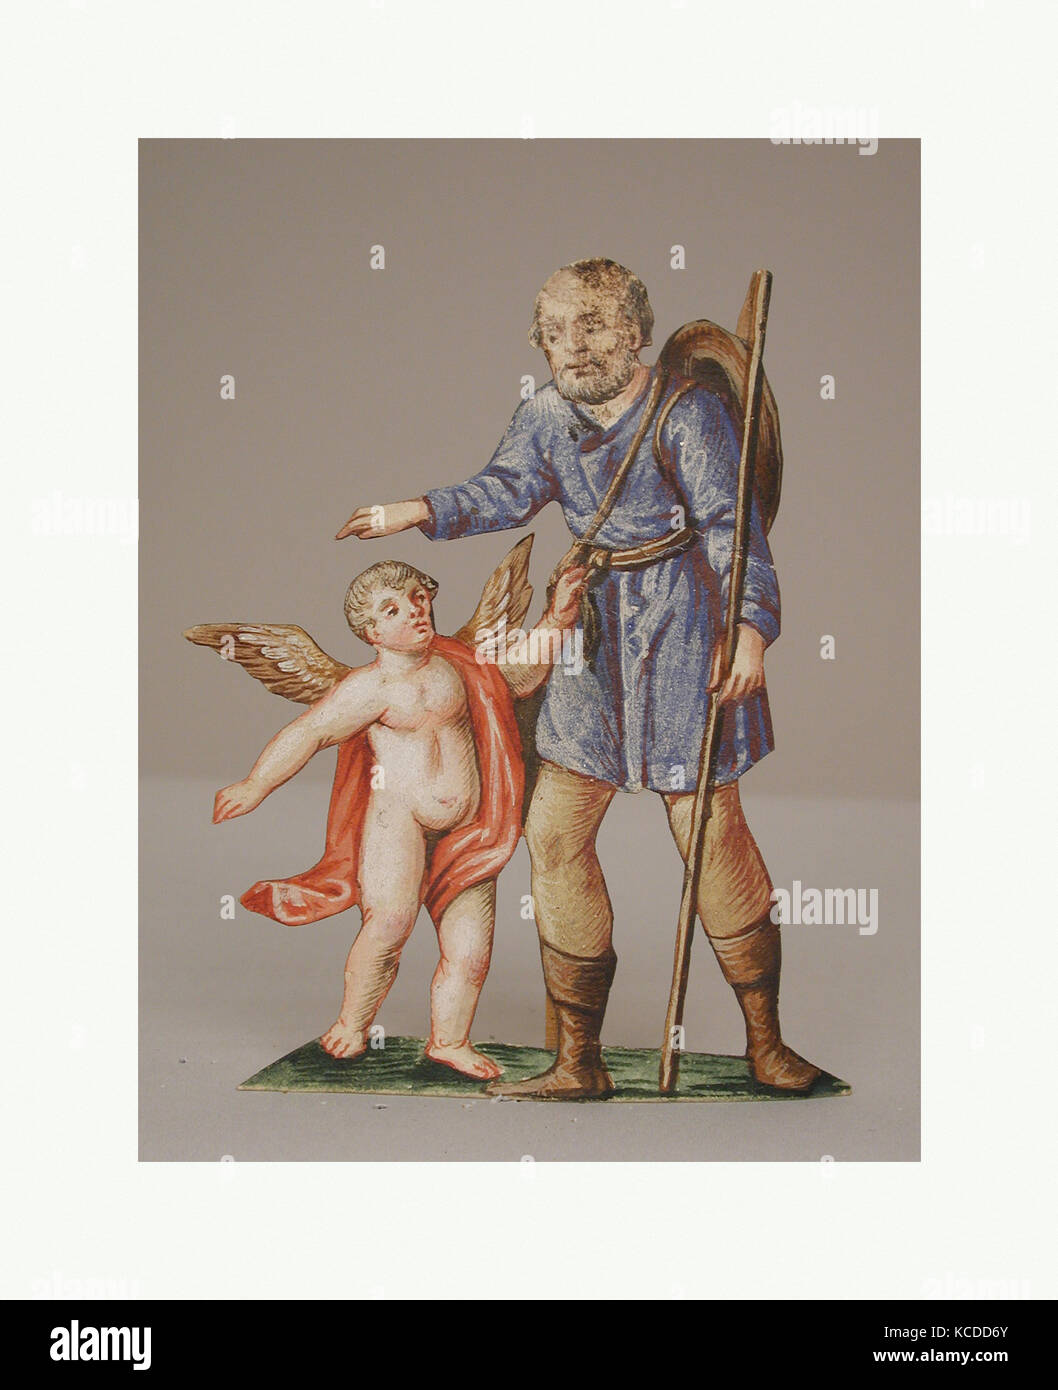 The Nativity, 18th century, Southern German, Gouache on paper, Ave.: 4 in. (10.2 cm), Paper - Stock Image